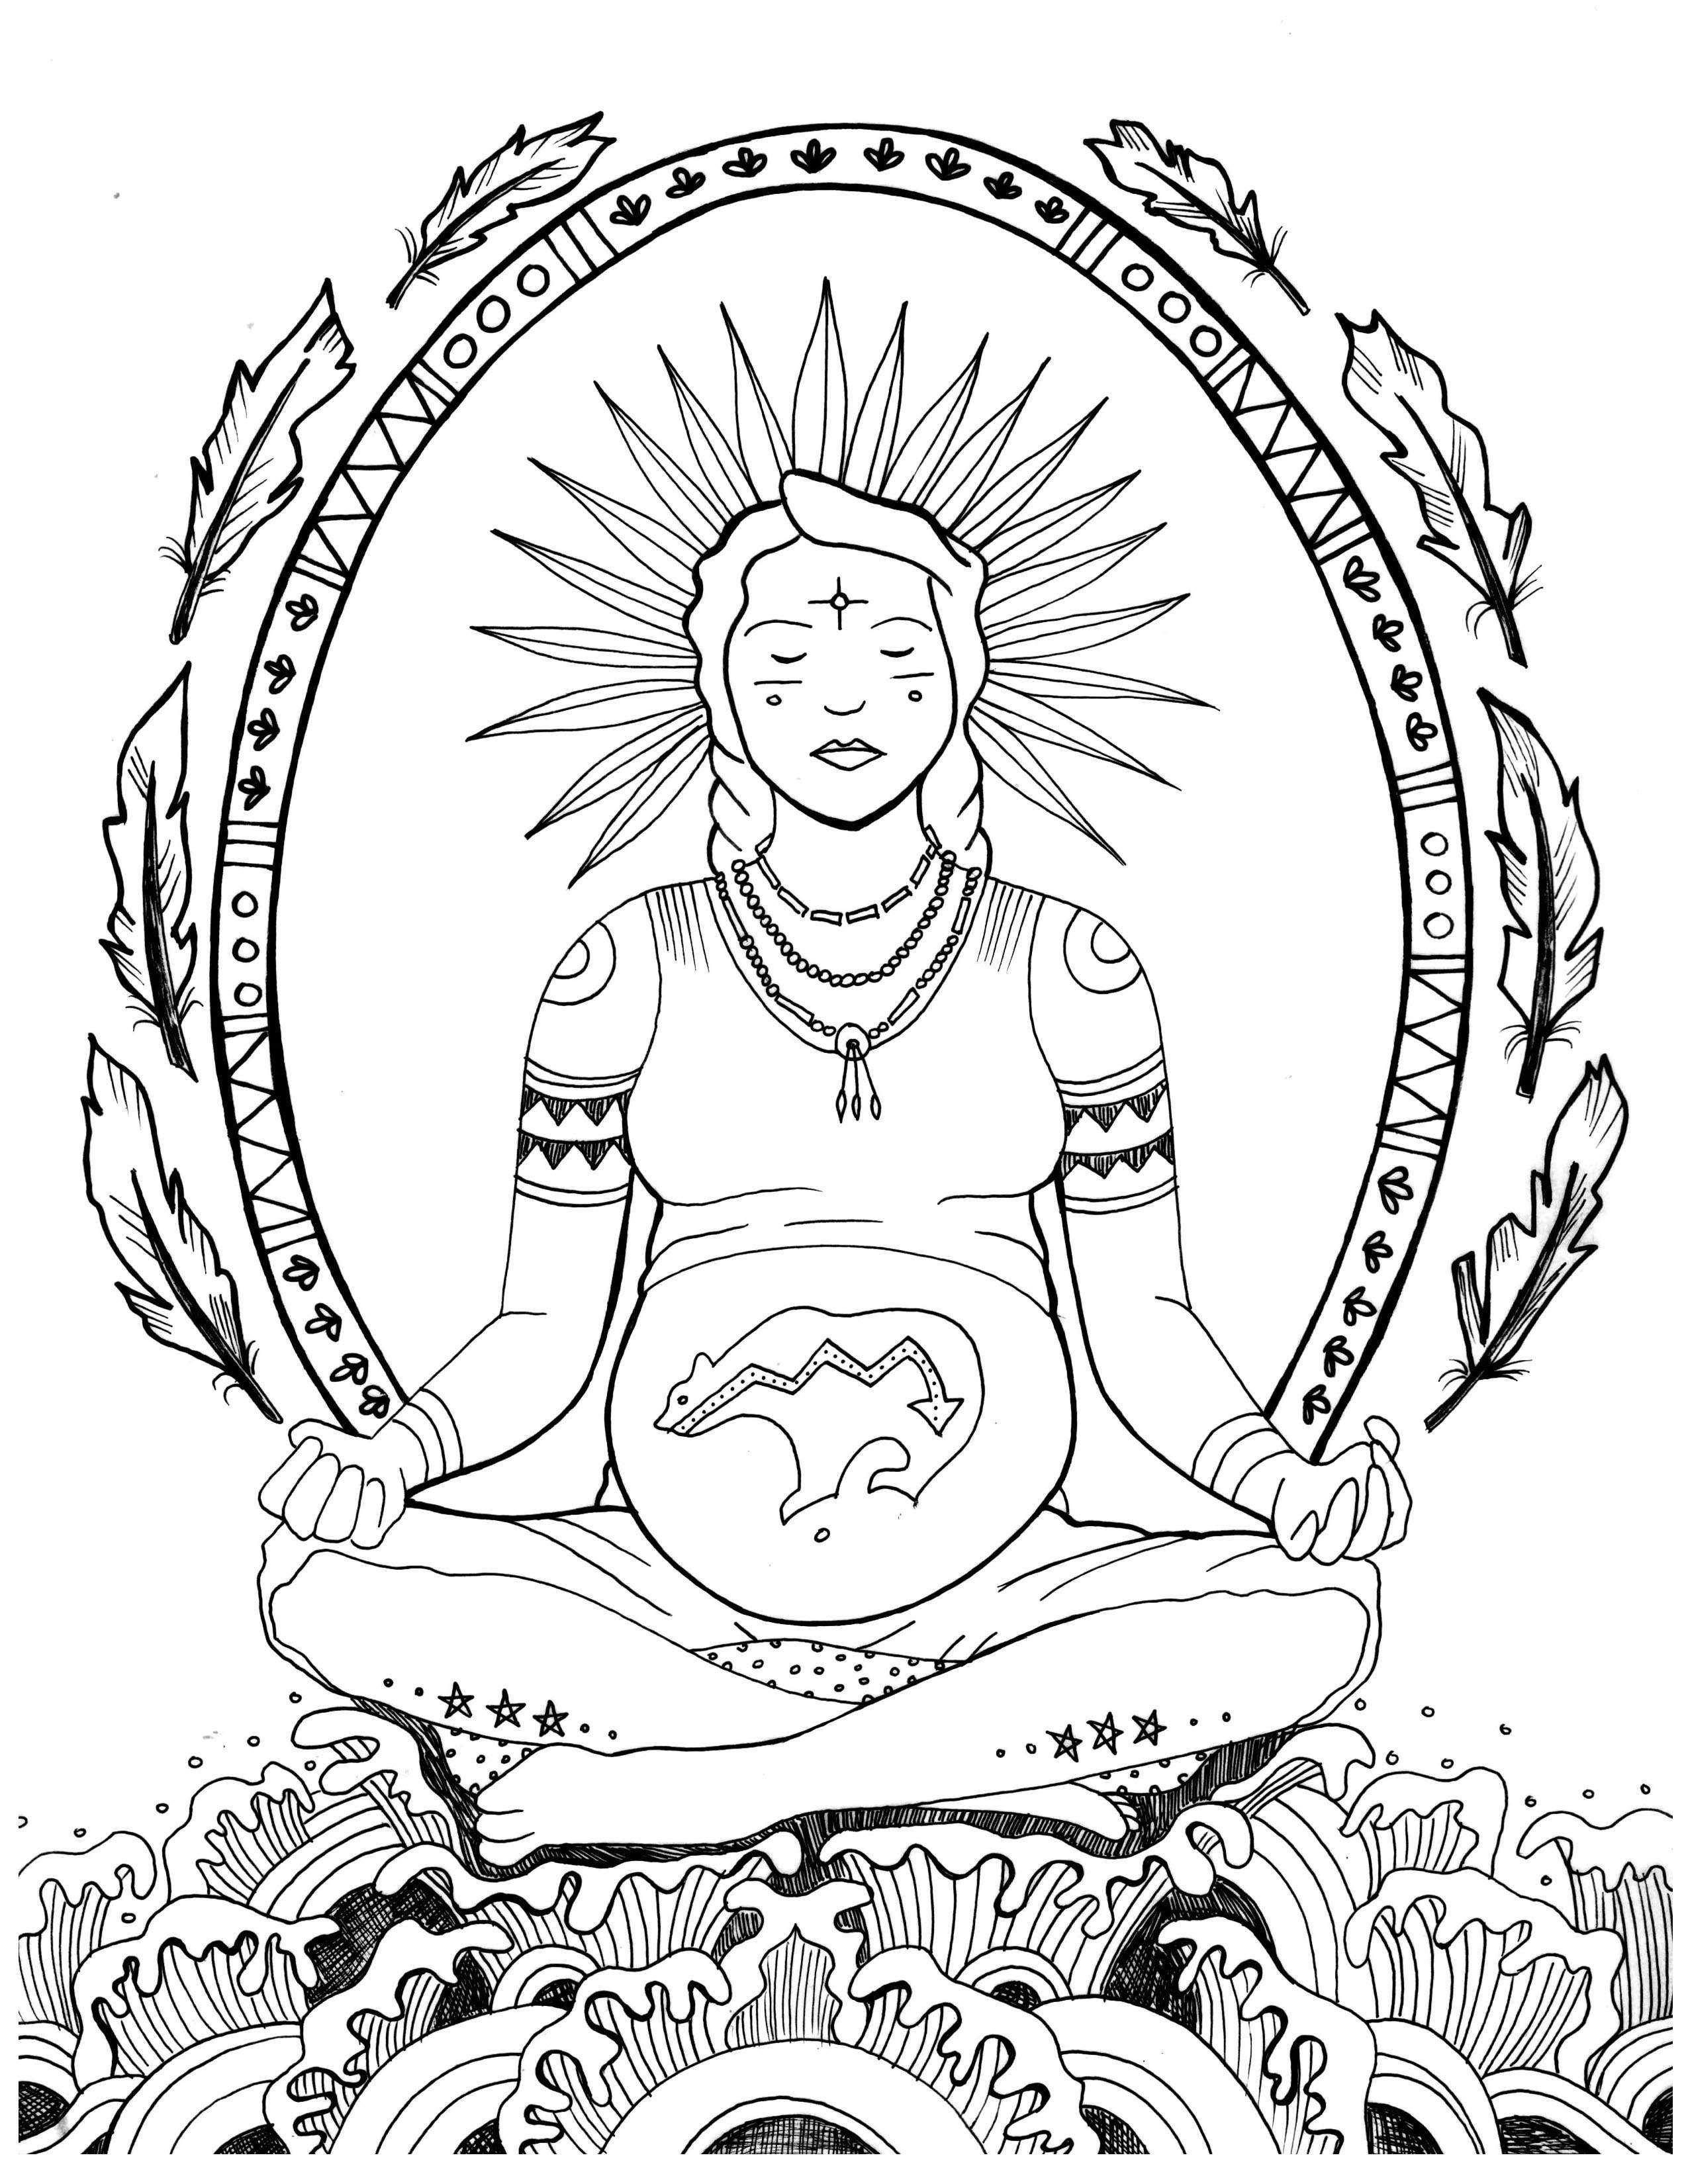 Free Pregnancy Coloring Pages | Pregnancy, Free and Birth